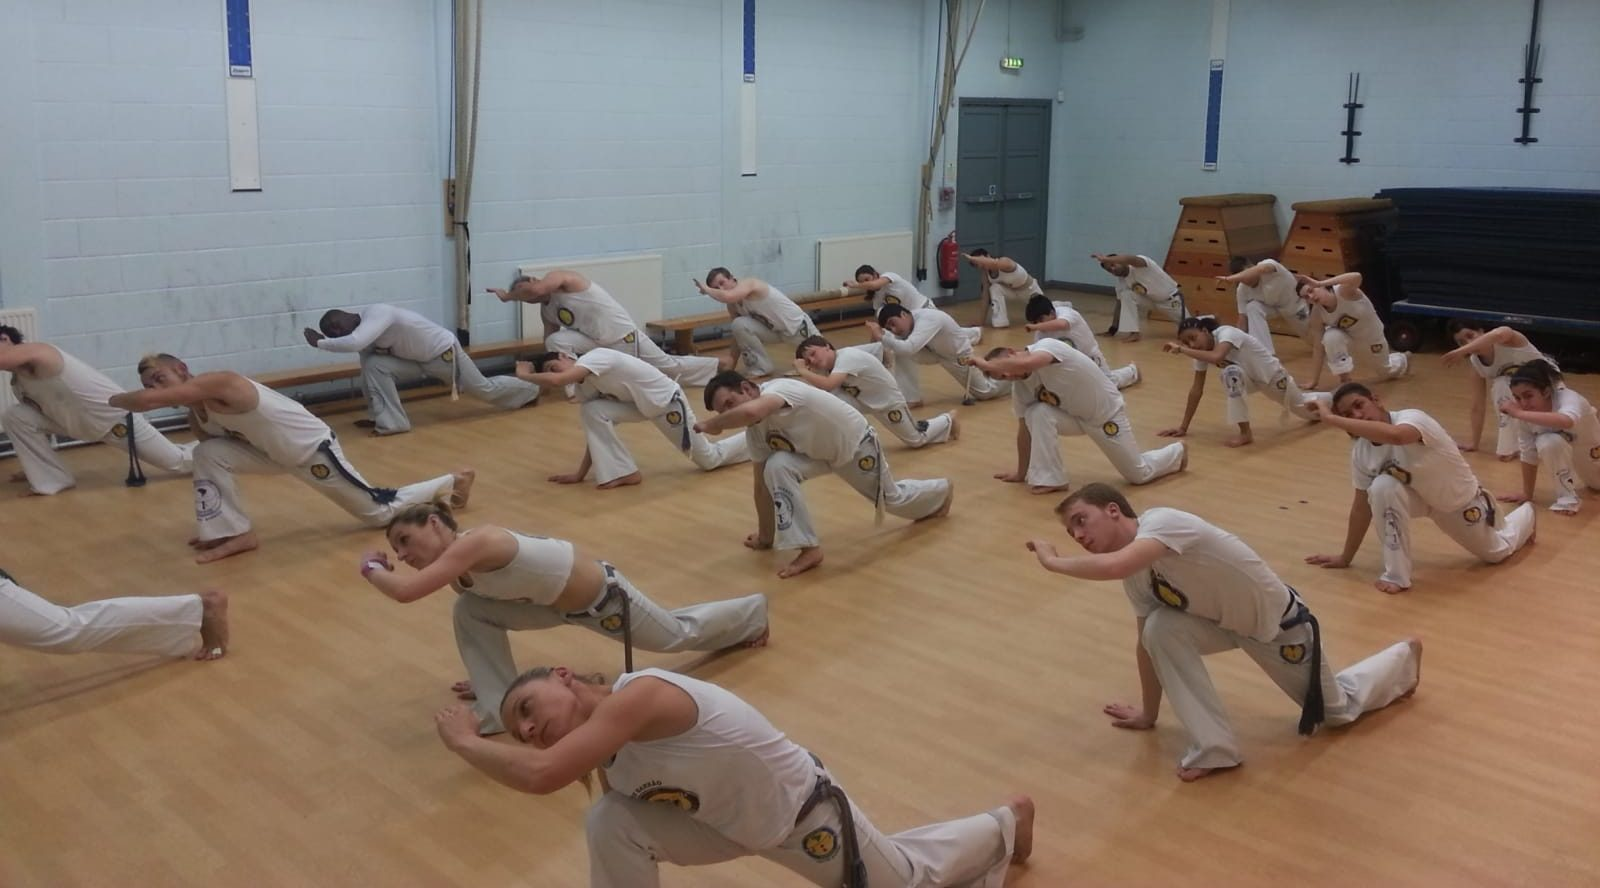 Kingston University Capoeira club in search of new members